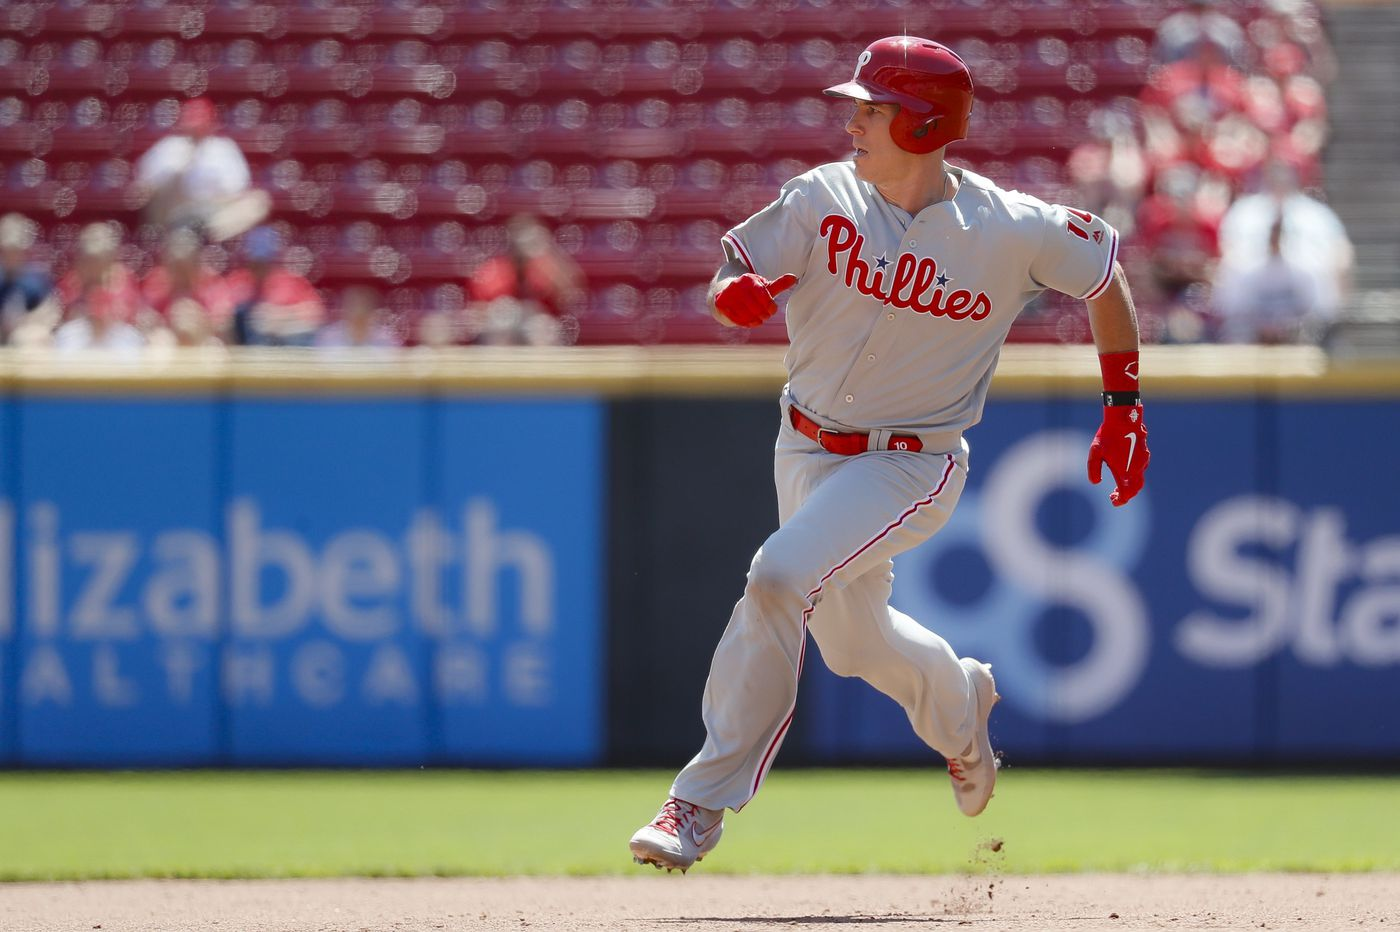 Phillies' J.T. Realmuto showing no signs of fatigue at plate or behind it